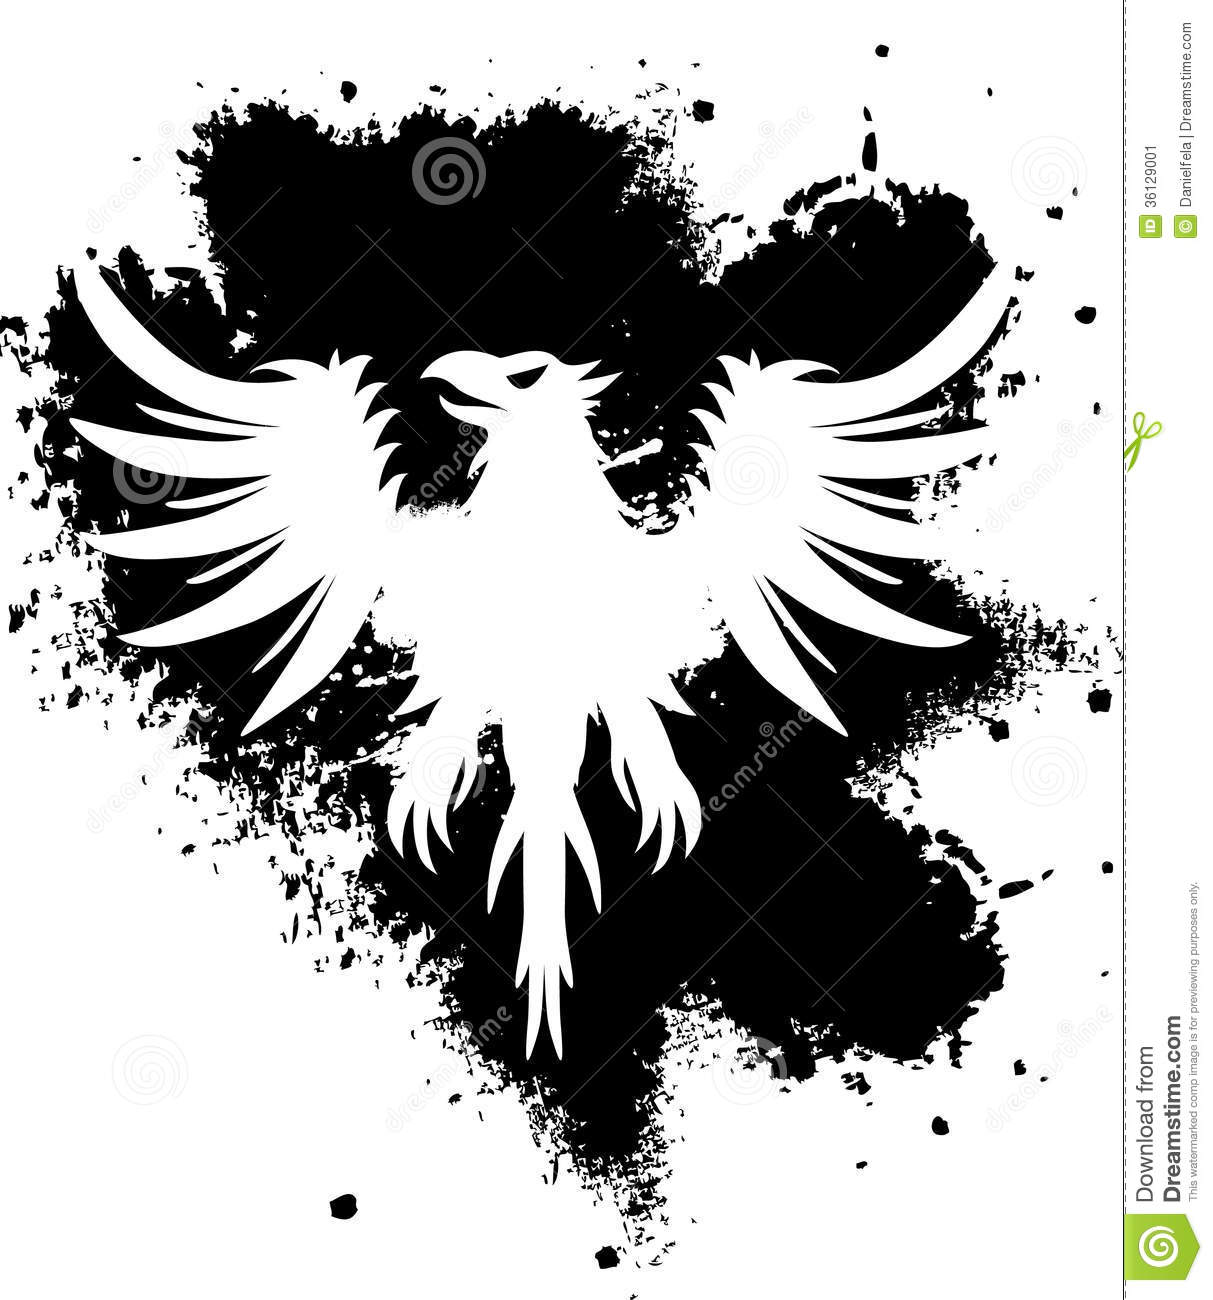 Black and white eagle stock vector. Image of illustrations ...